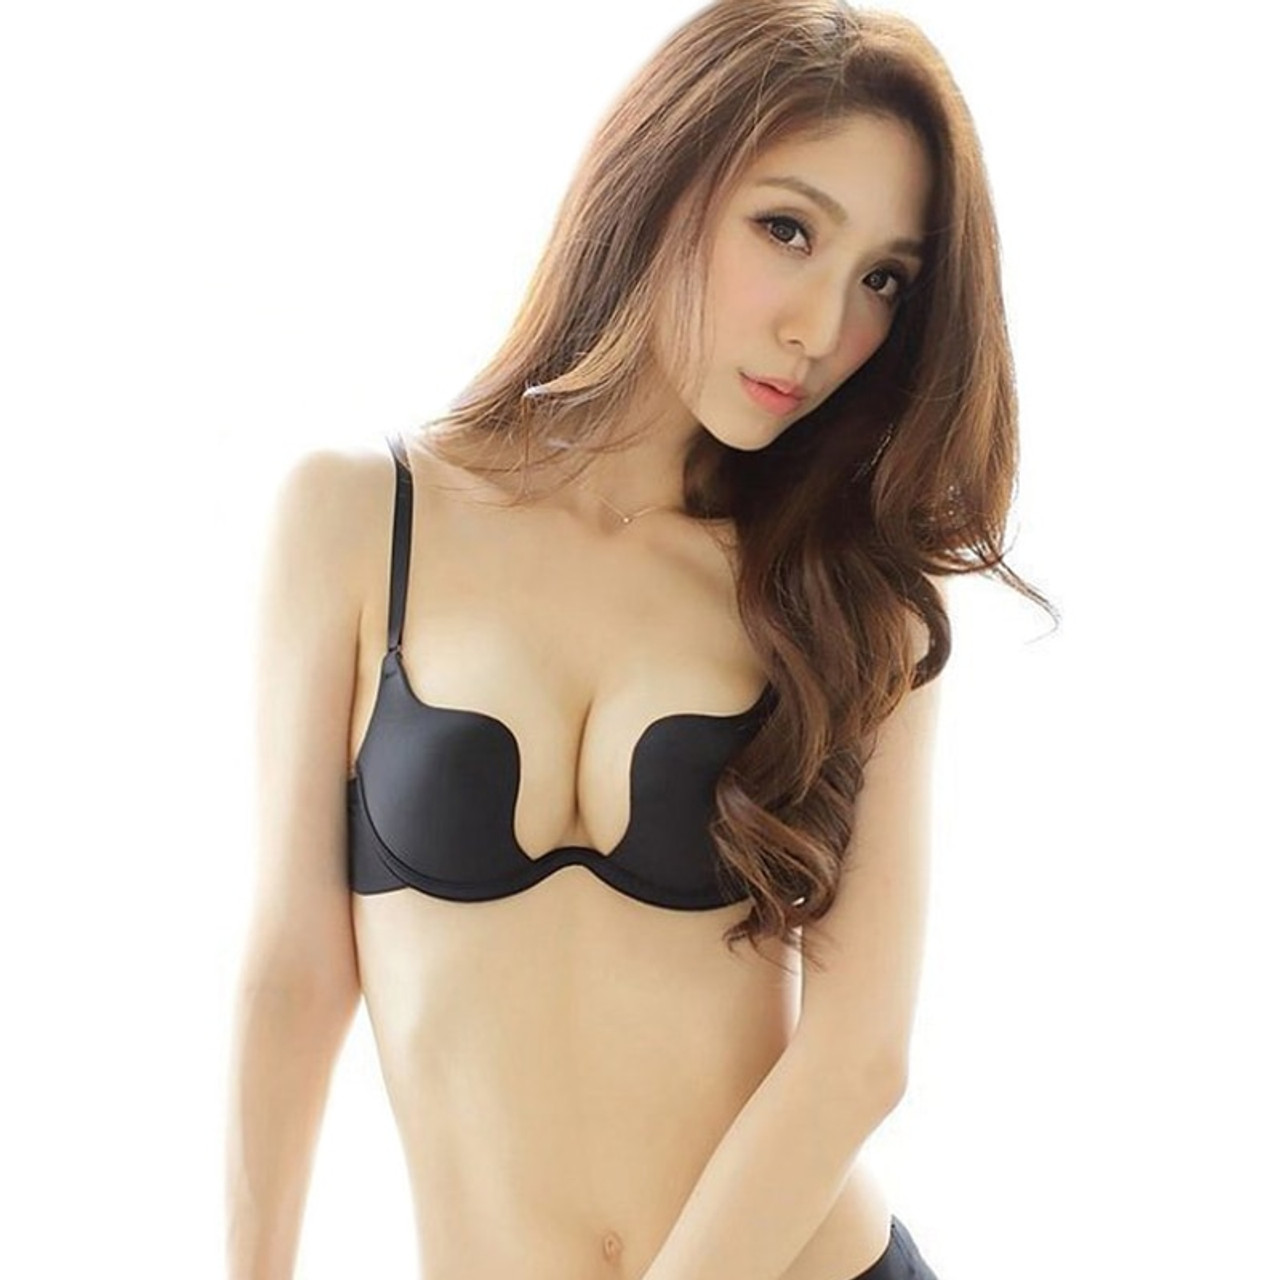 61362739b3980 Women Push Up Bra For Small Breast Women Double Push Up Bras Size Push Up  Bra Sexy Push Up Bra Silicone Underwear Gather Drop - OnshopDeals.Com